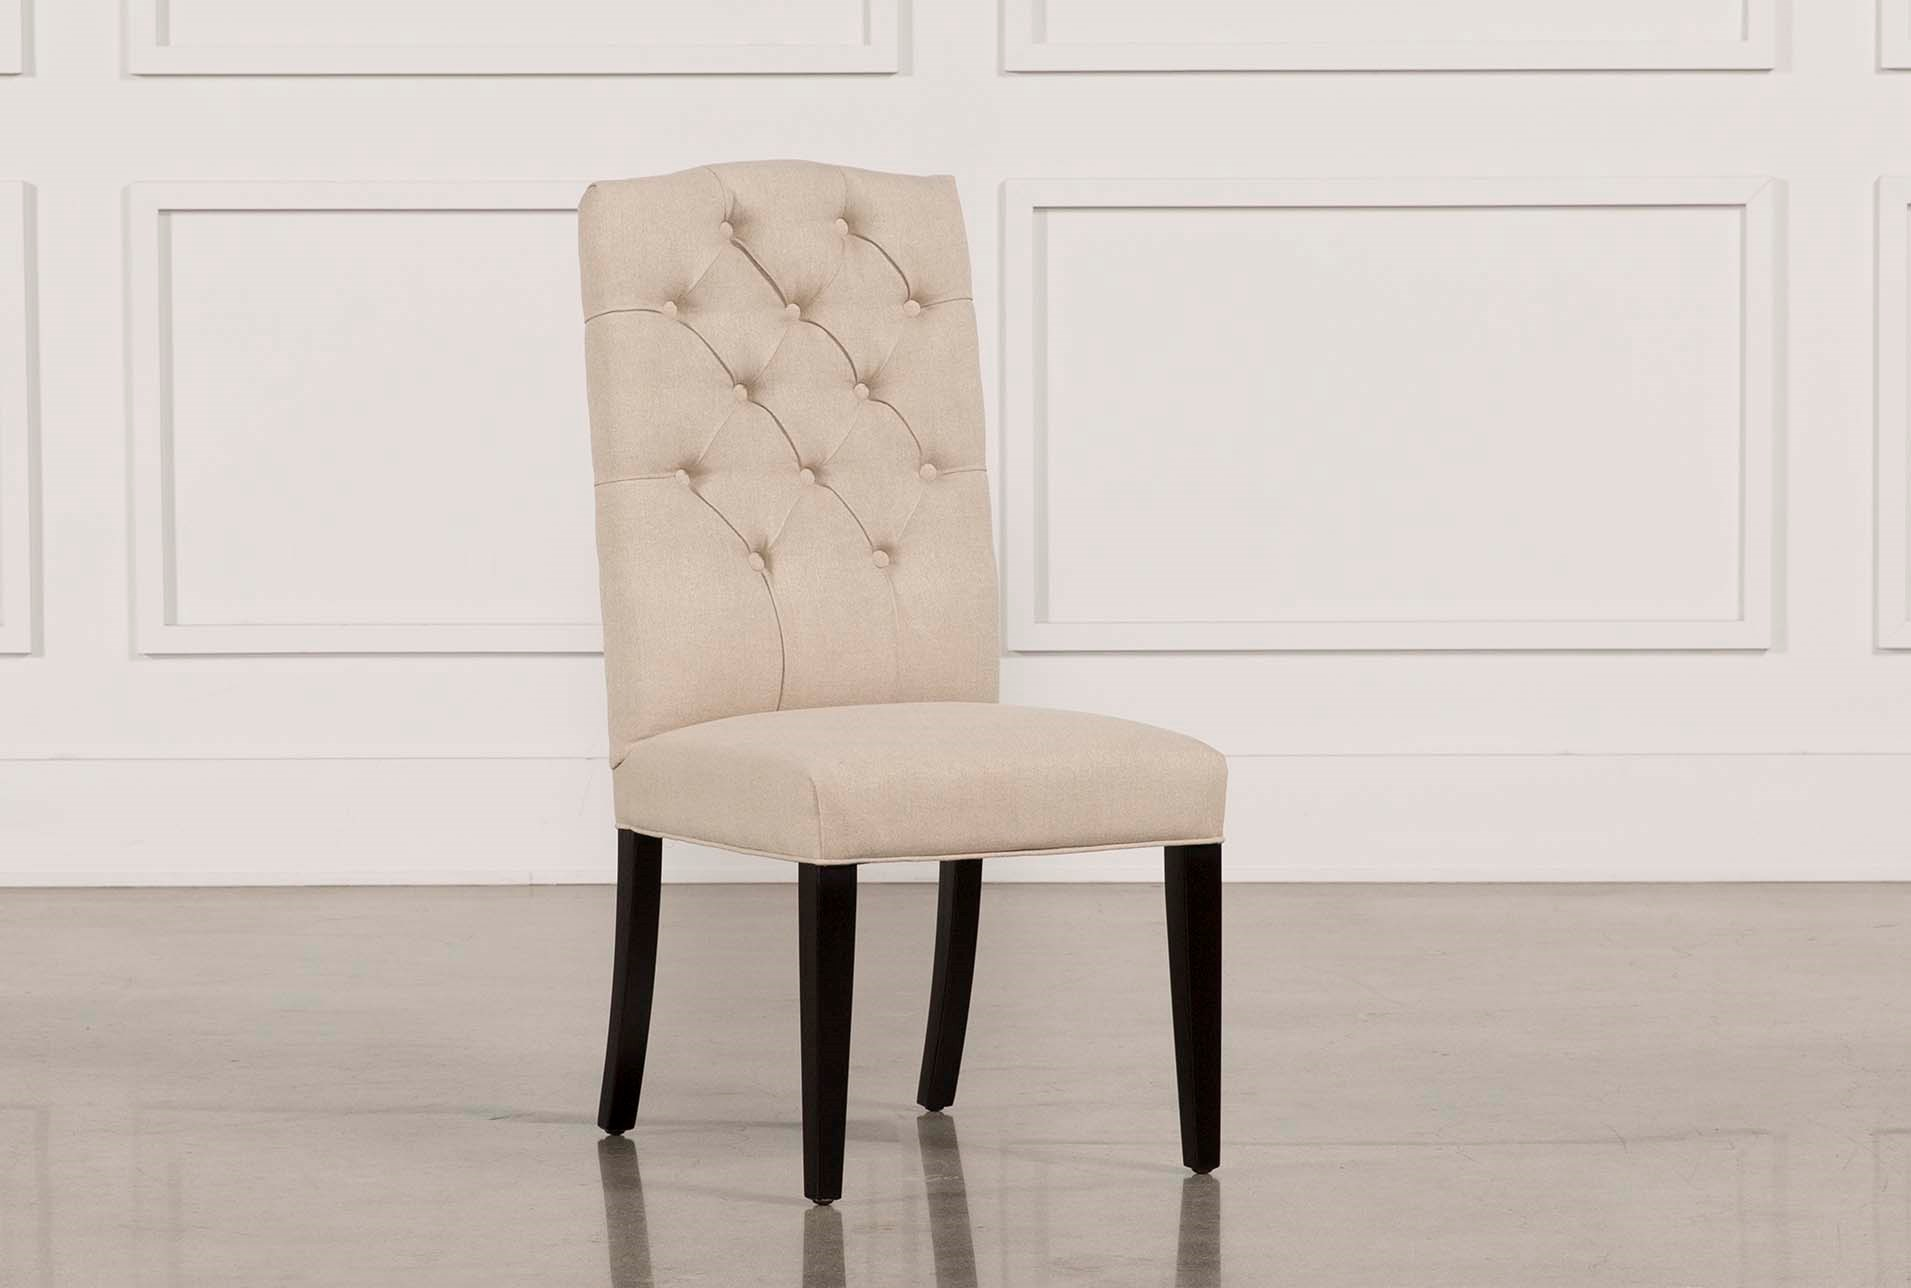 Tufted Living Room Chair Tufted living room furniture living spaces display product reviews for lola side chair sisterspd